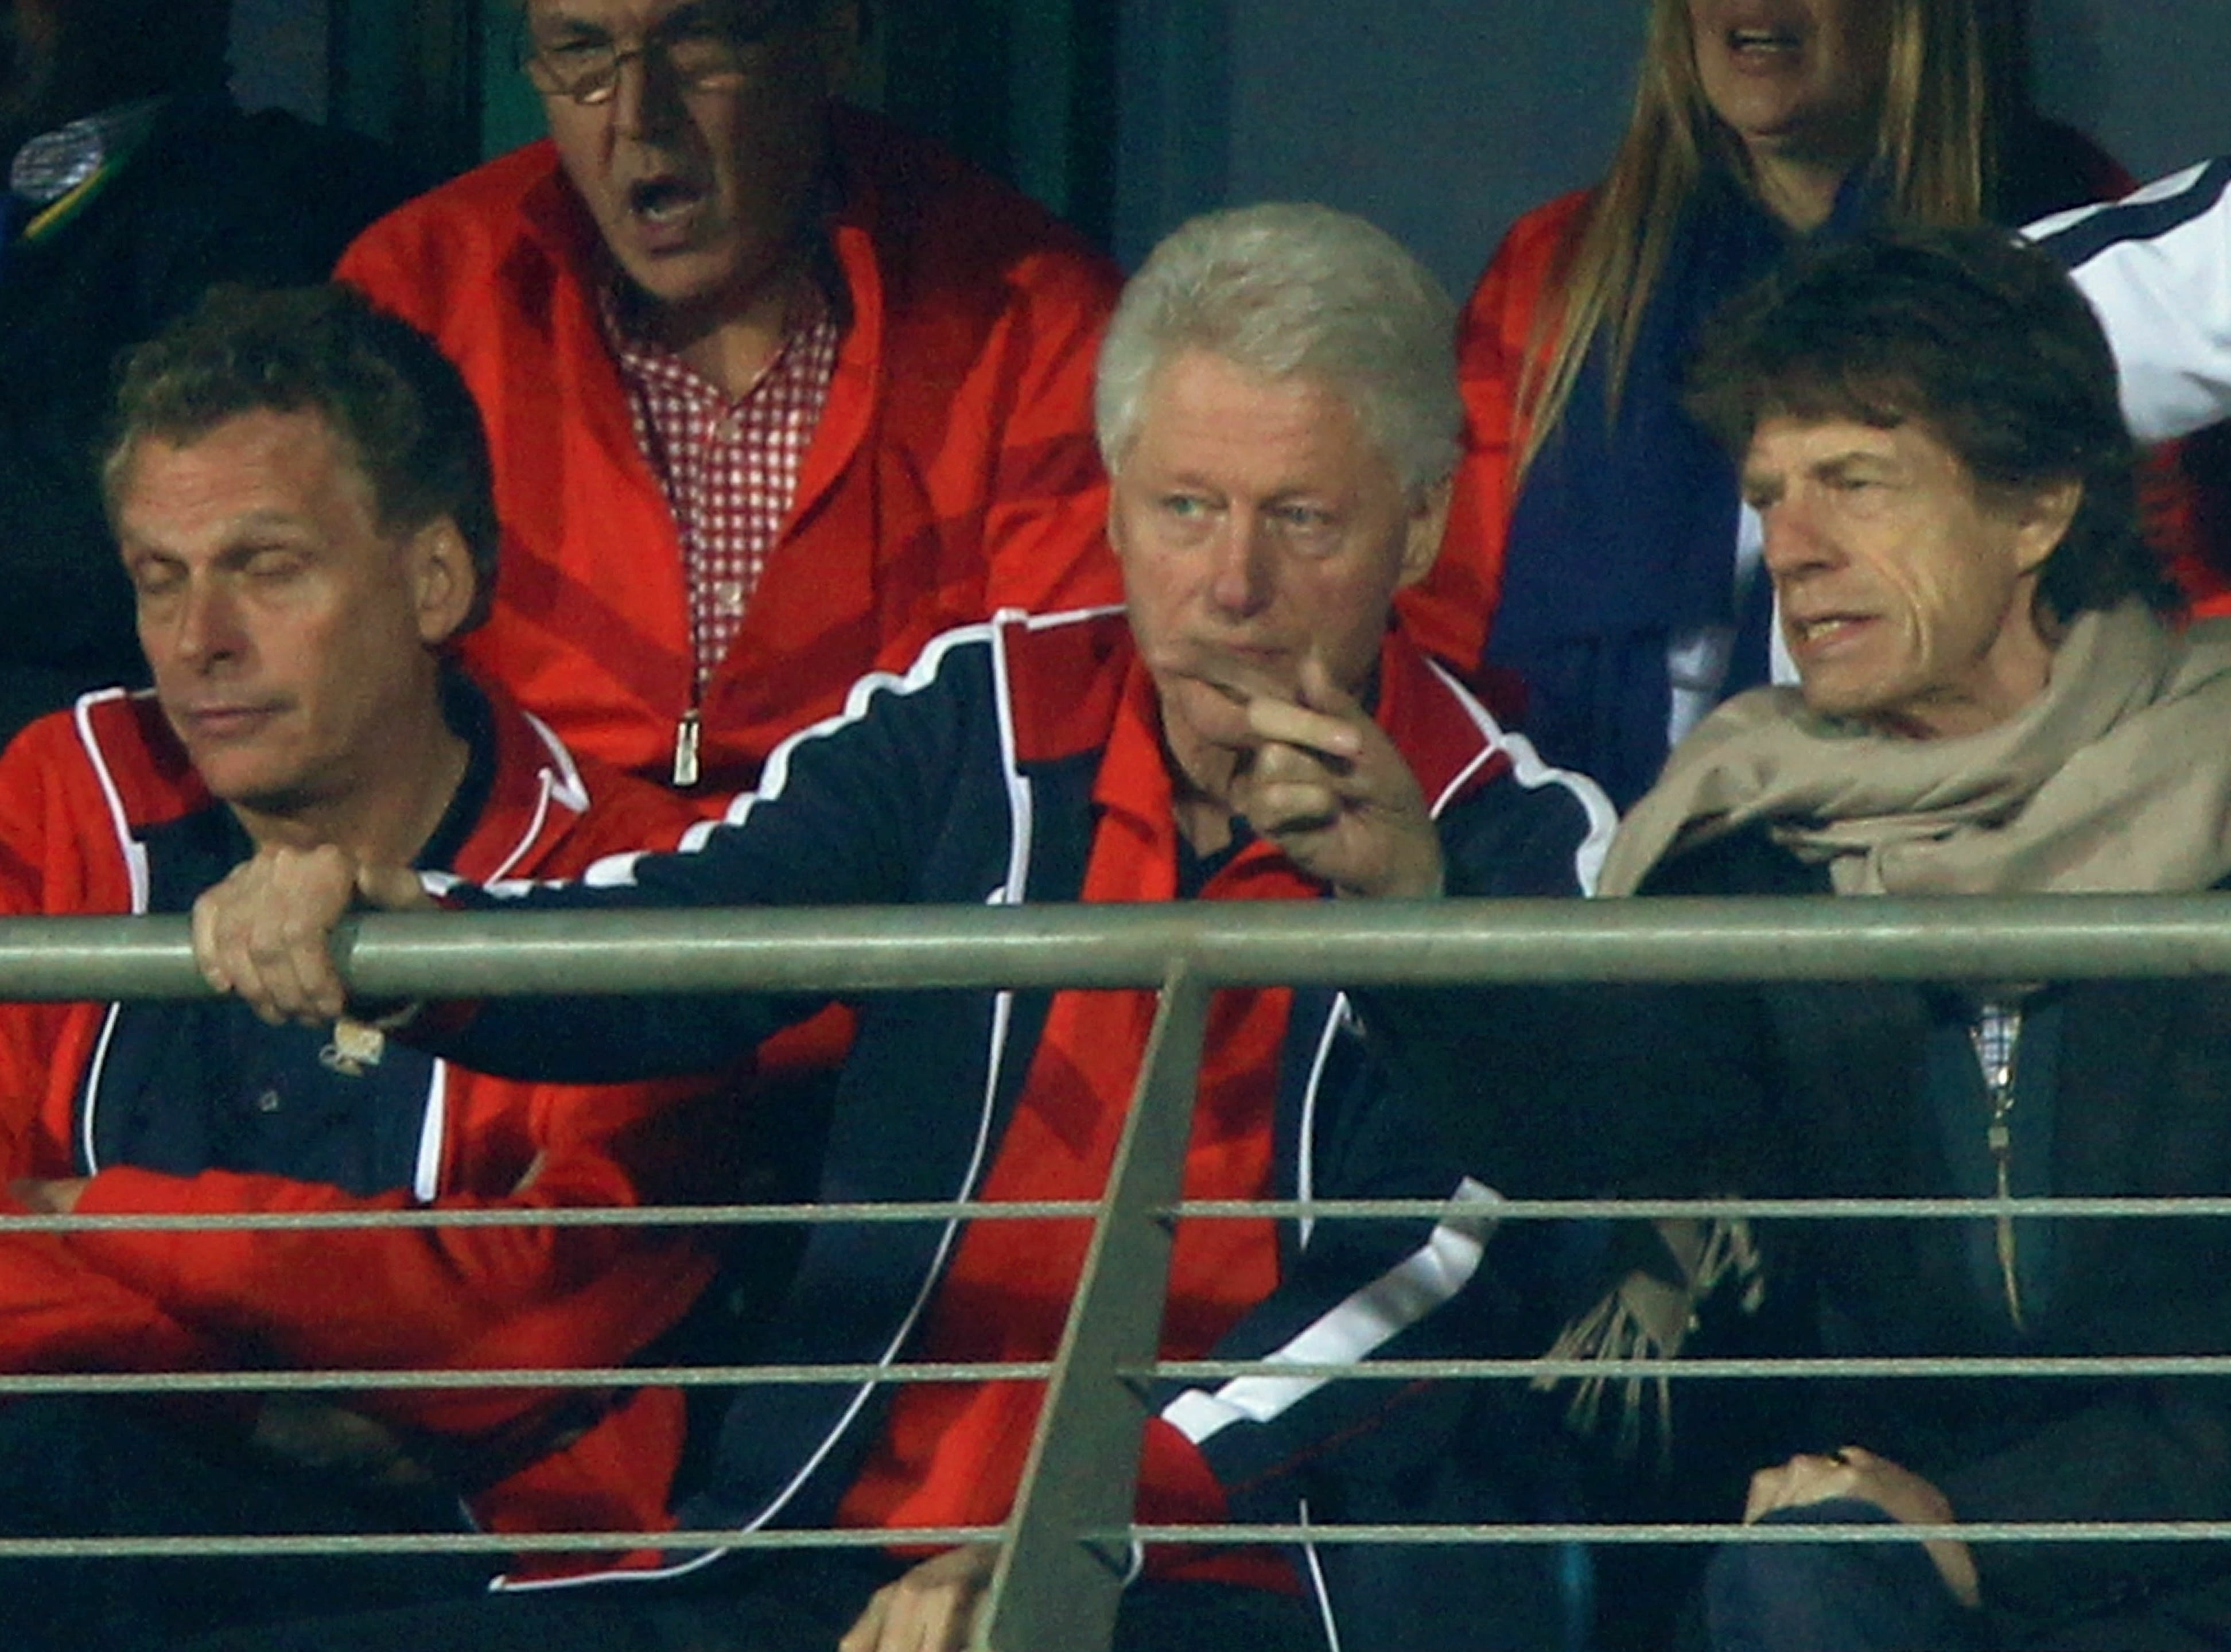 ORG XMIT: 98698388 RUSTENBURG, SOUTH AFRICA - JUNE 26:  Former US President Bill Clinton and Mick Jagger look on after watching USA lose the 2010 FIFA World Cup South Africa Round of Sixteen match between USA and Ghana at Royal Bafokeng Stadium on June 26, 2010 in Rustenburg, South Africa.  (Photo by Ian Walton/Getty Images) GTY ID: 98388BD028_USA_v_Ghana_2